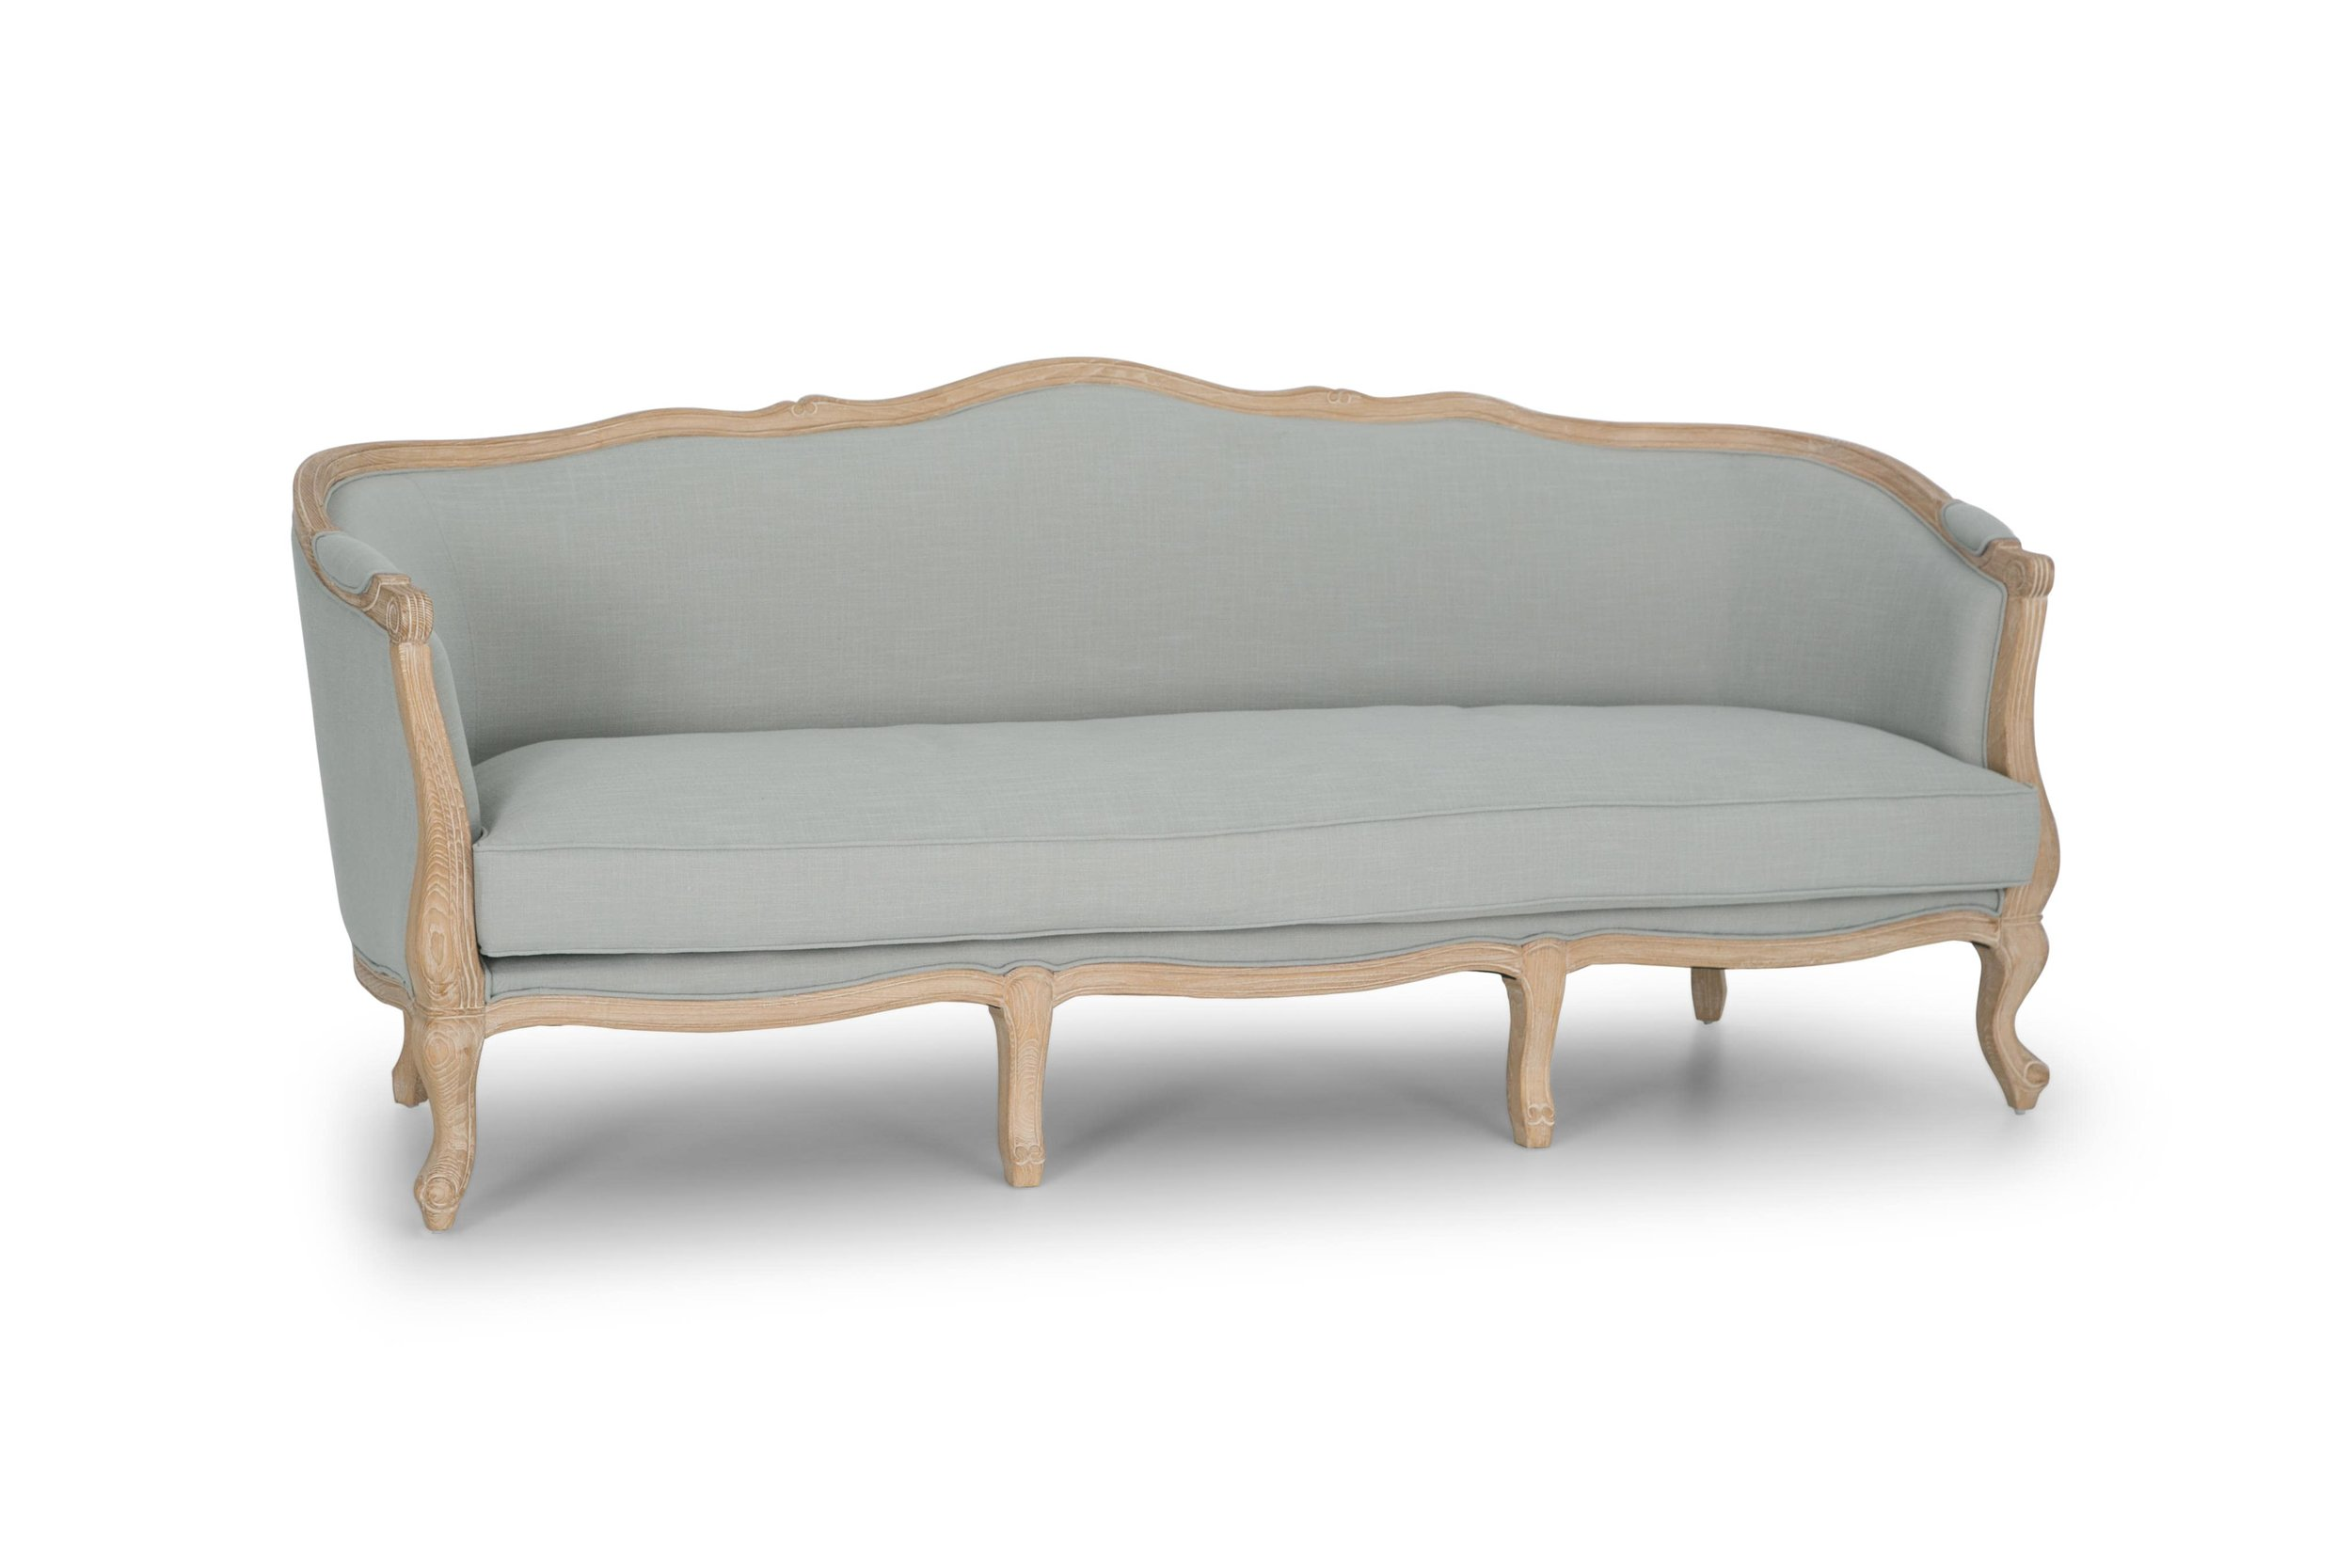 Sofia Sofa Natural Oak Frame, Gray Upholstery